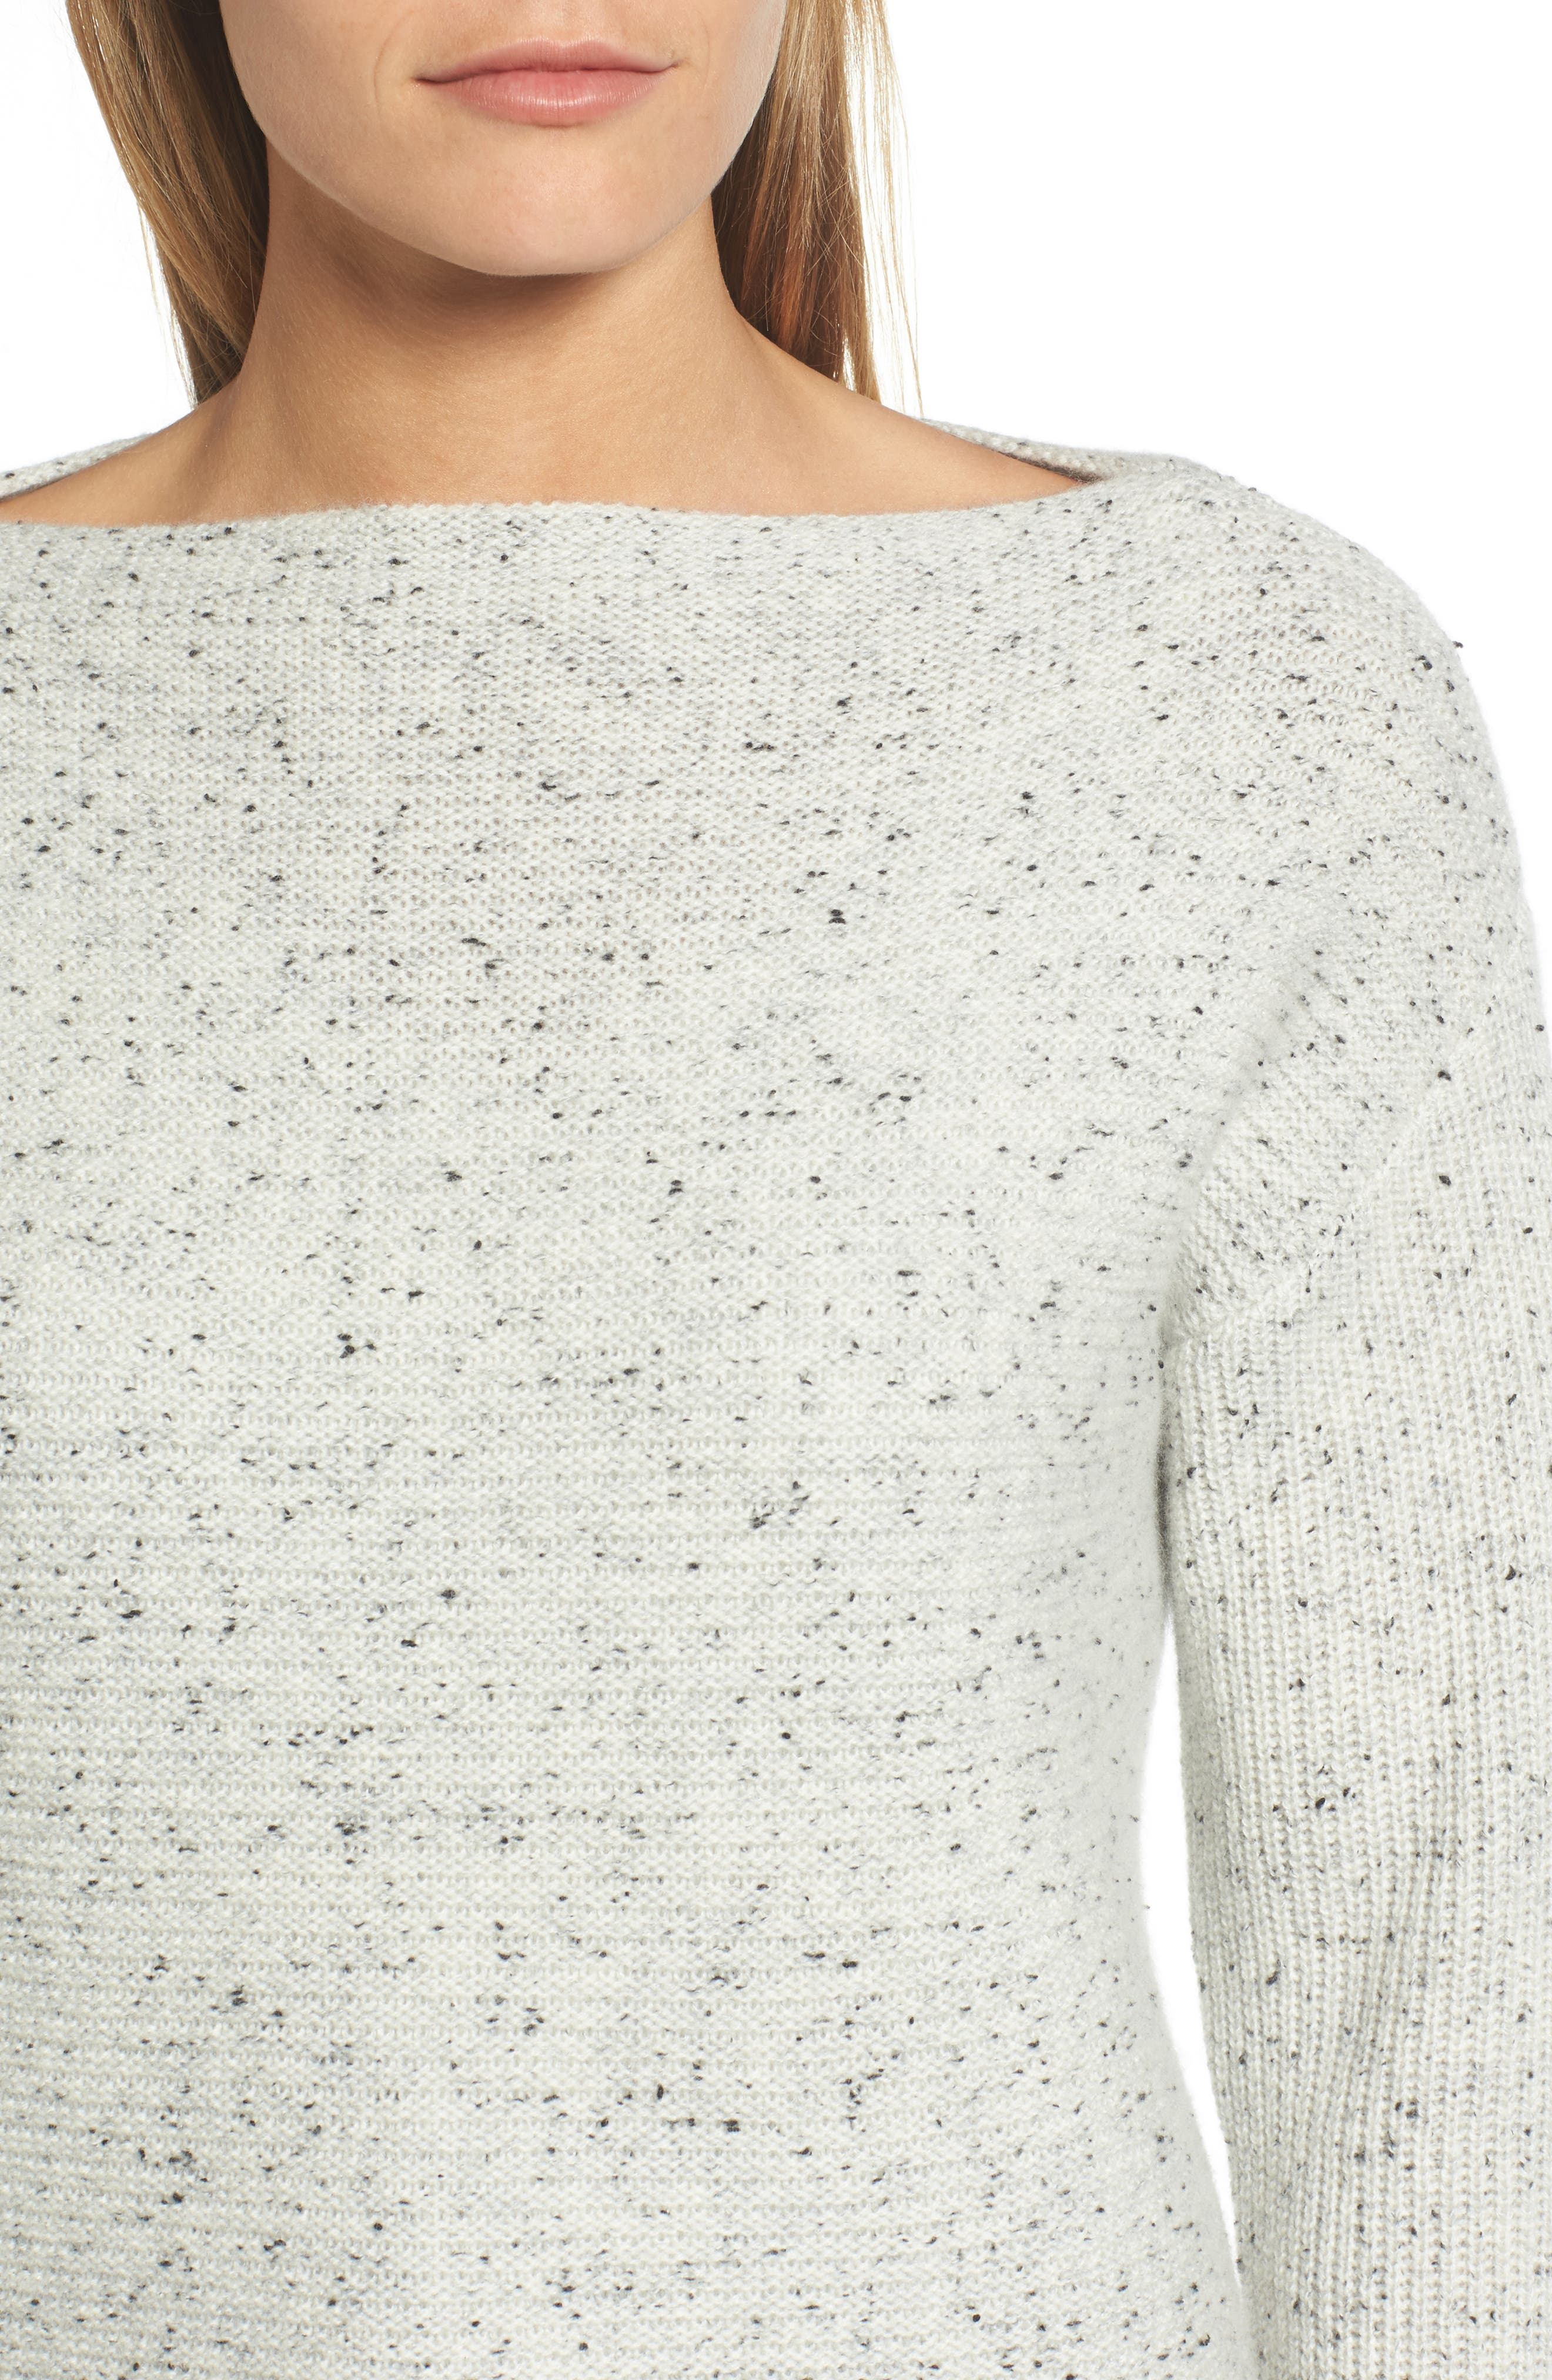 Textured Cashmere Sweater,                             Alternate thumbnail 4, color,